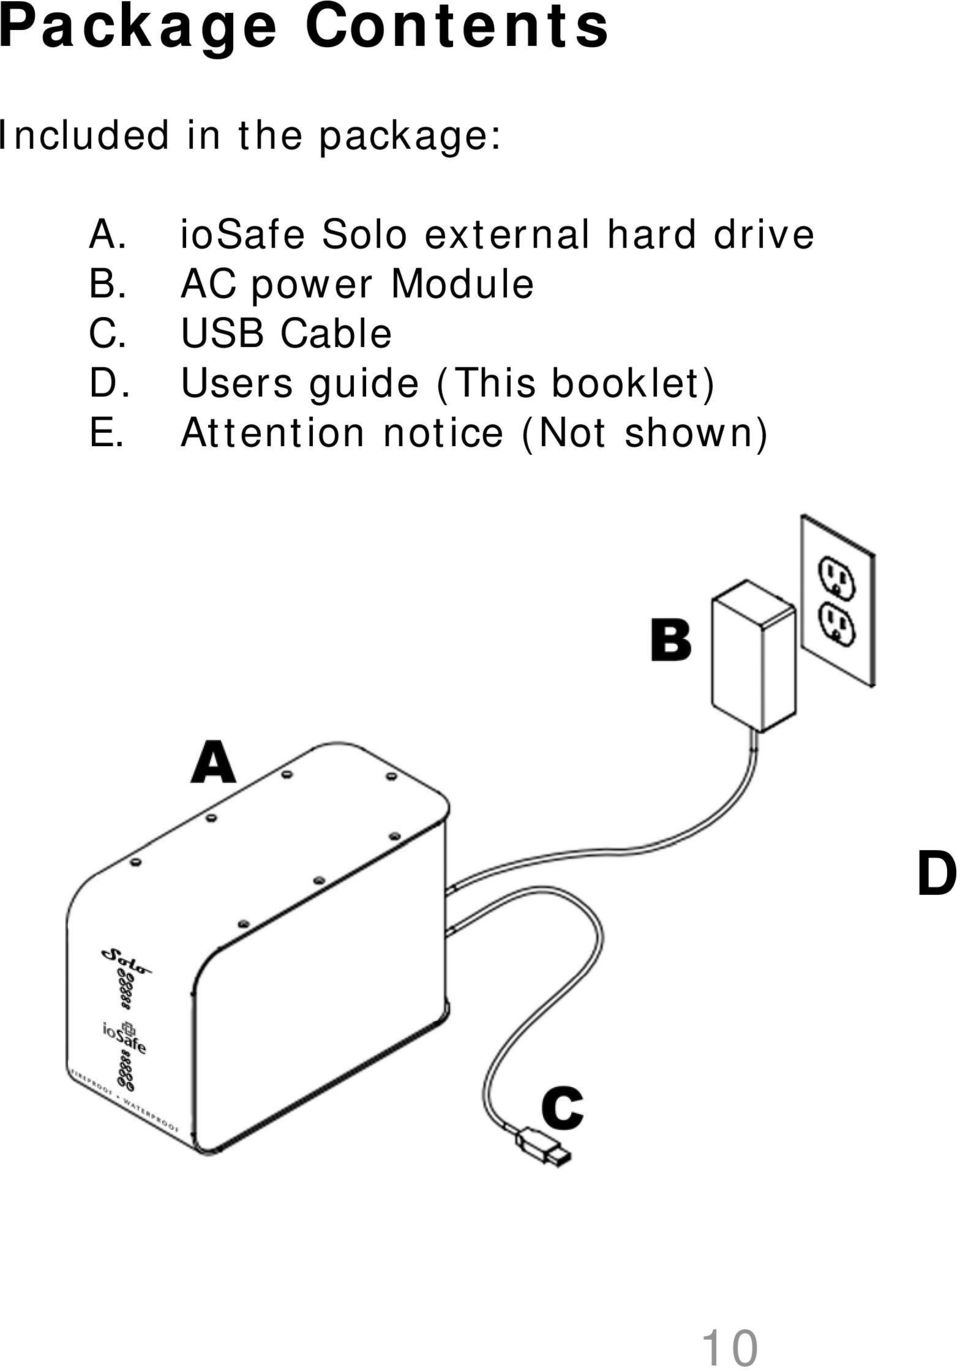 AC power Module C. USB Cable D.